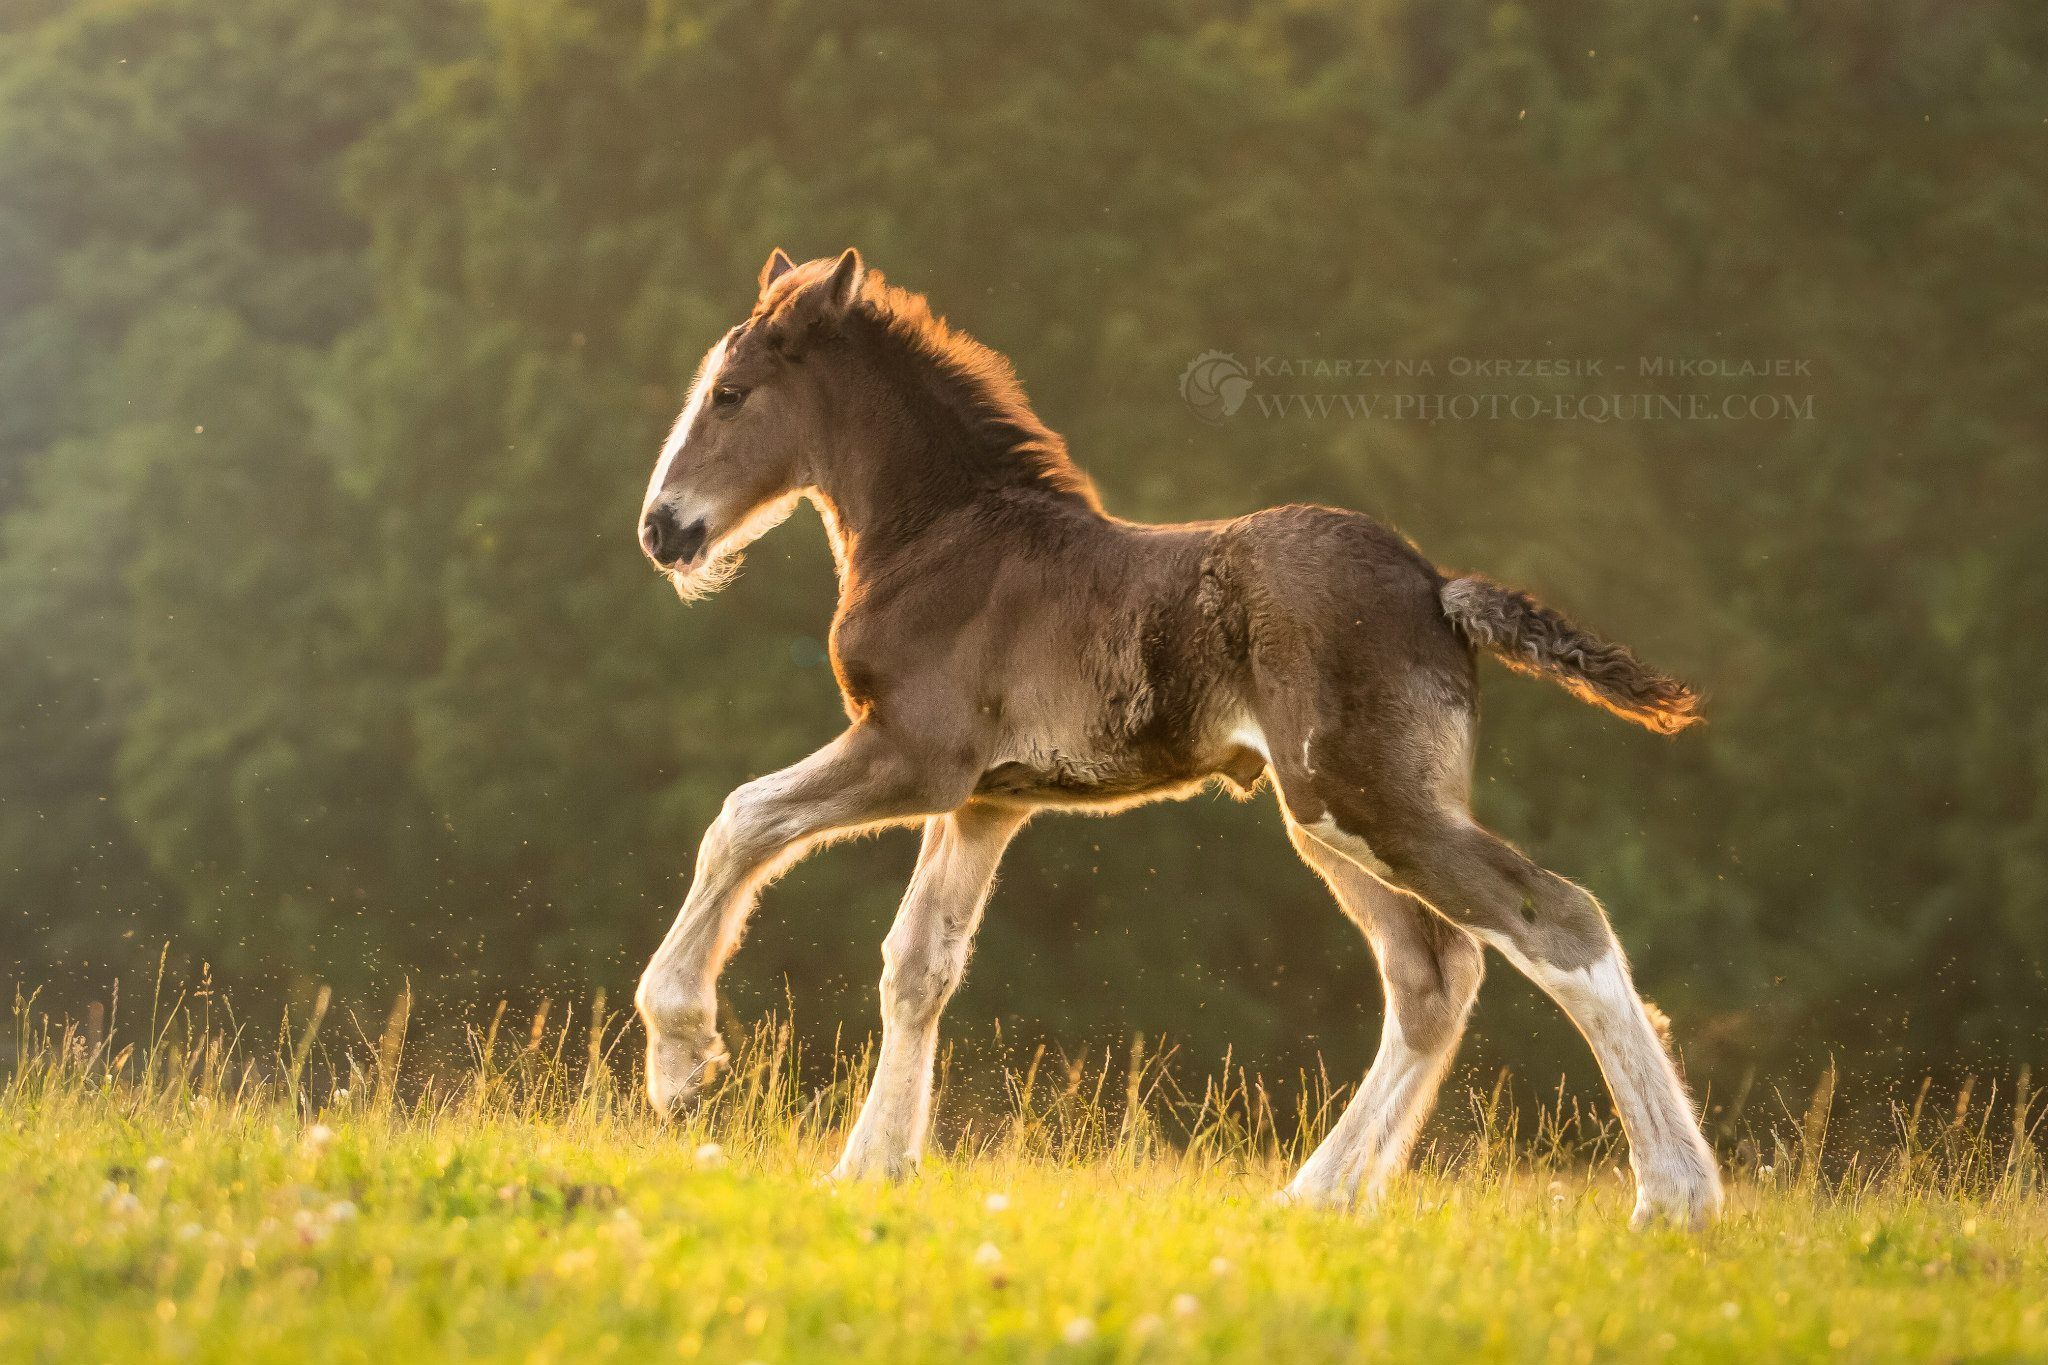 I Let Pancake Out In The Field She Loved It She Is Such A Sweet Foal Harley Horses Big Horses Pretty Horses [ 1365 x 2048 Pixel ]